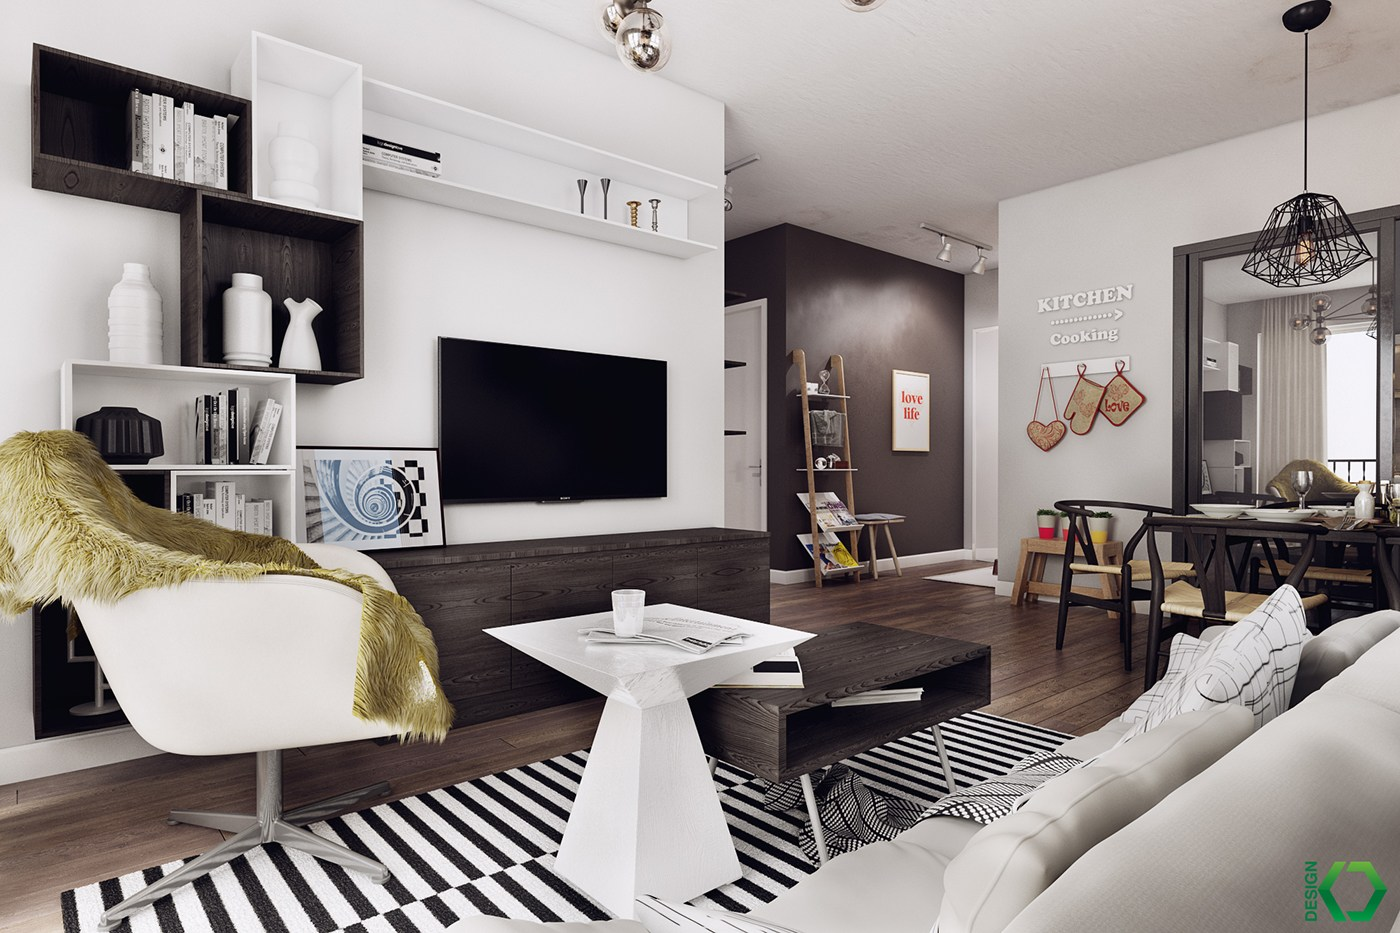 This is the last article before my summer vacation. A Charming Nordic Apartment Interior Design by Koj Design ...